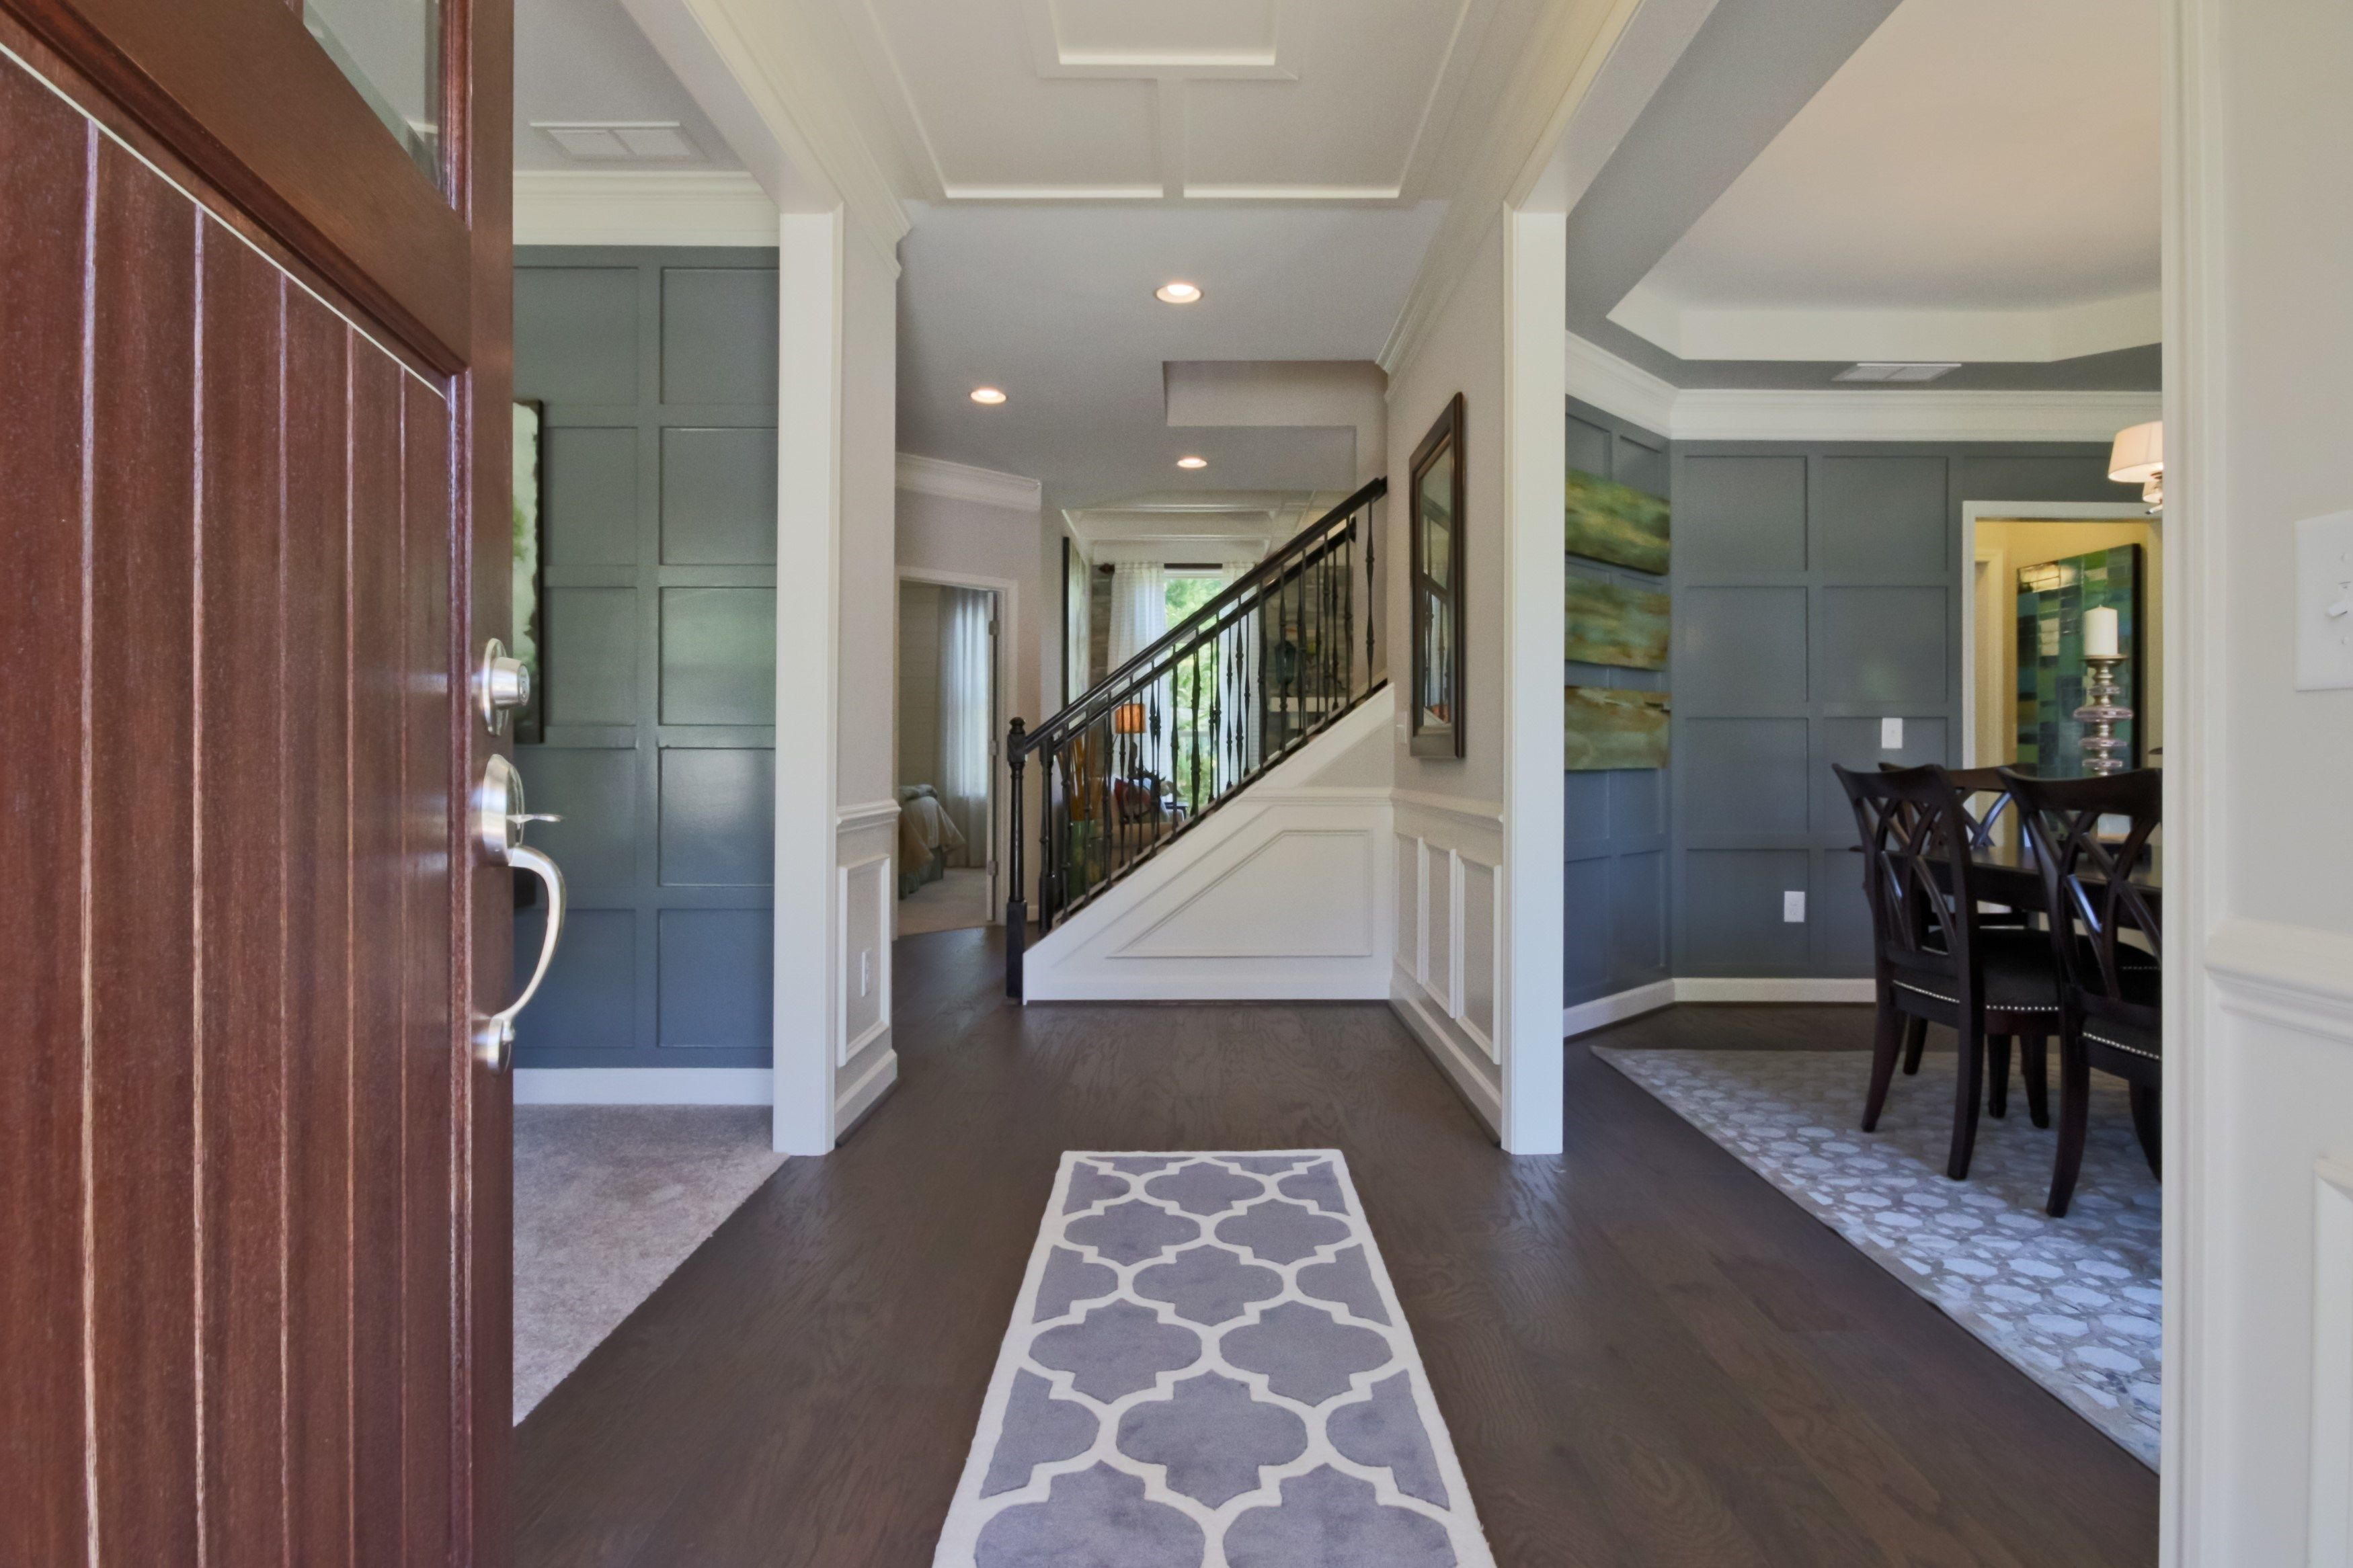 Model Home Foyer Pictures : Lochshire newly decorated model home #foyer pinterest